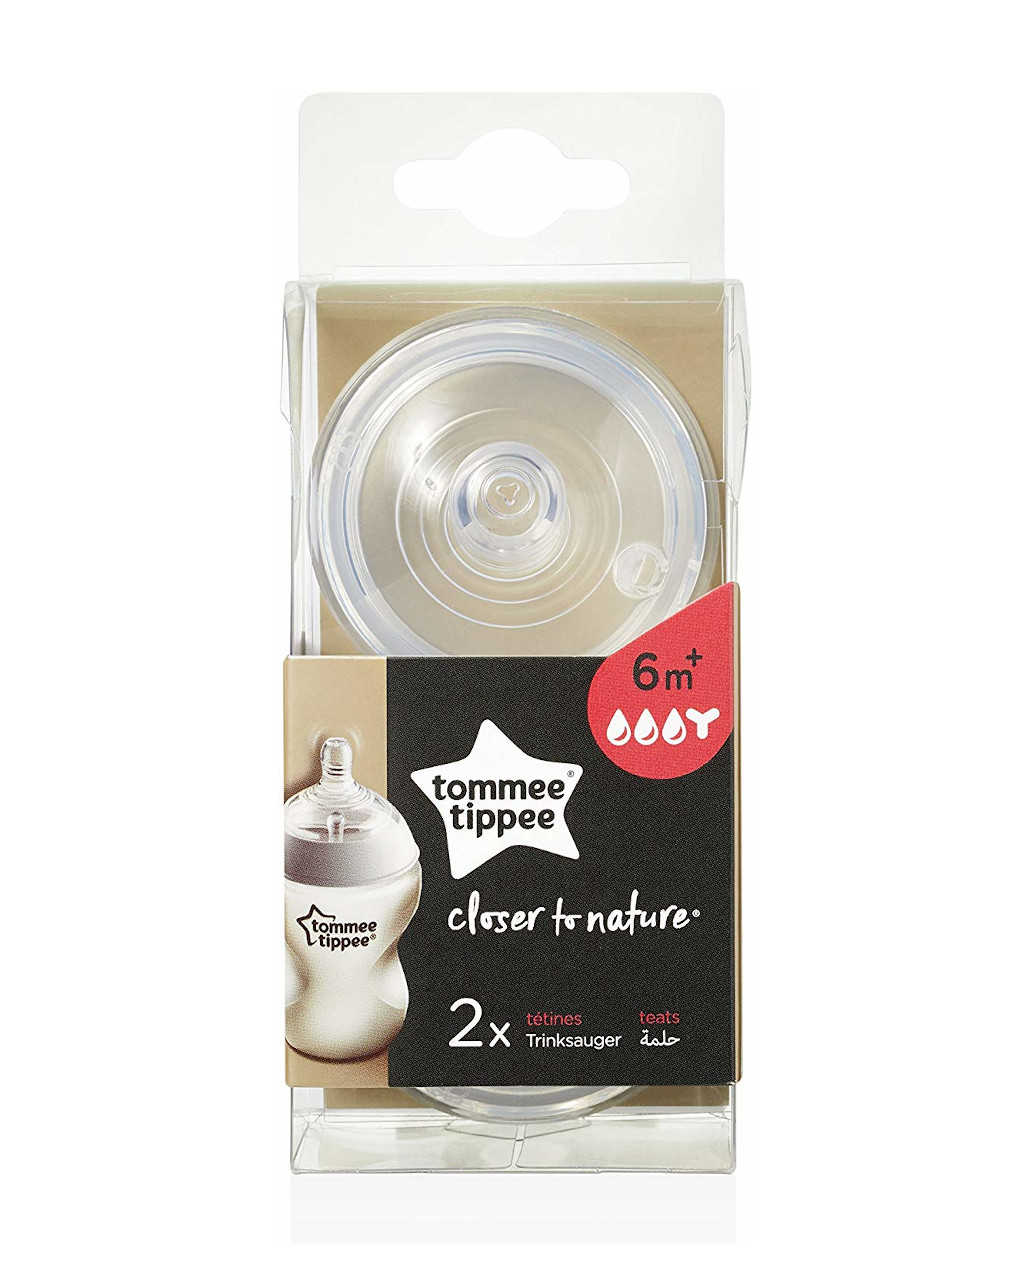 Tettarella closer to nature, flusso pappa 2pezzi tommee tippee - Tommee Tippee